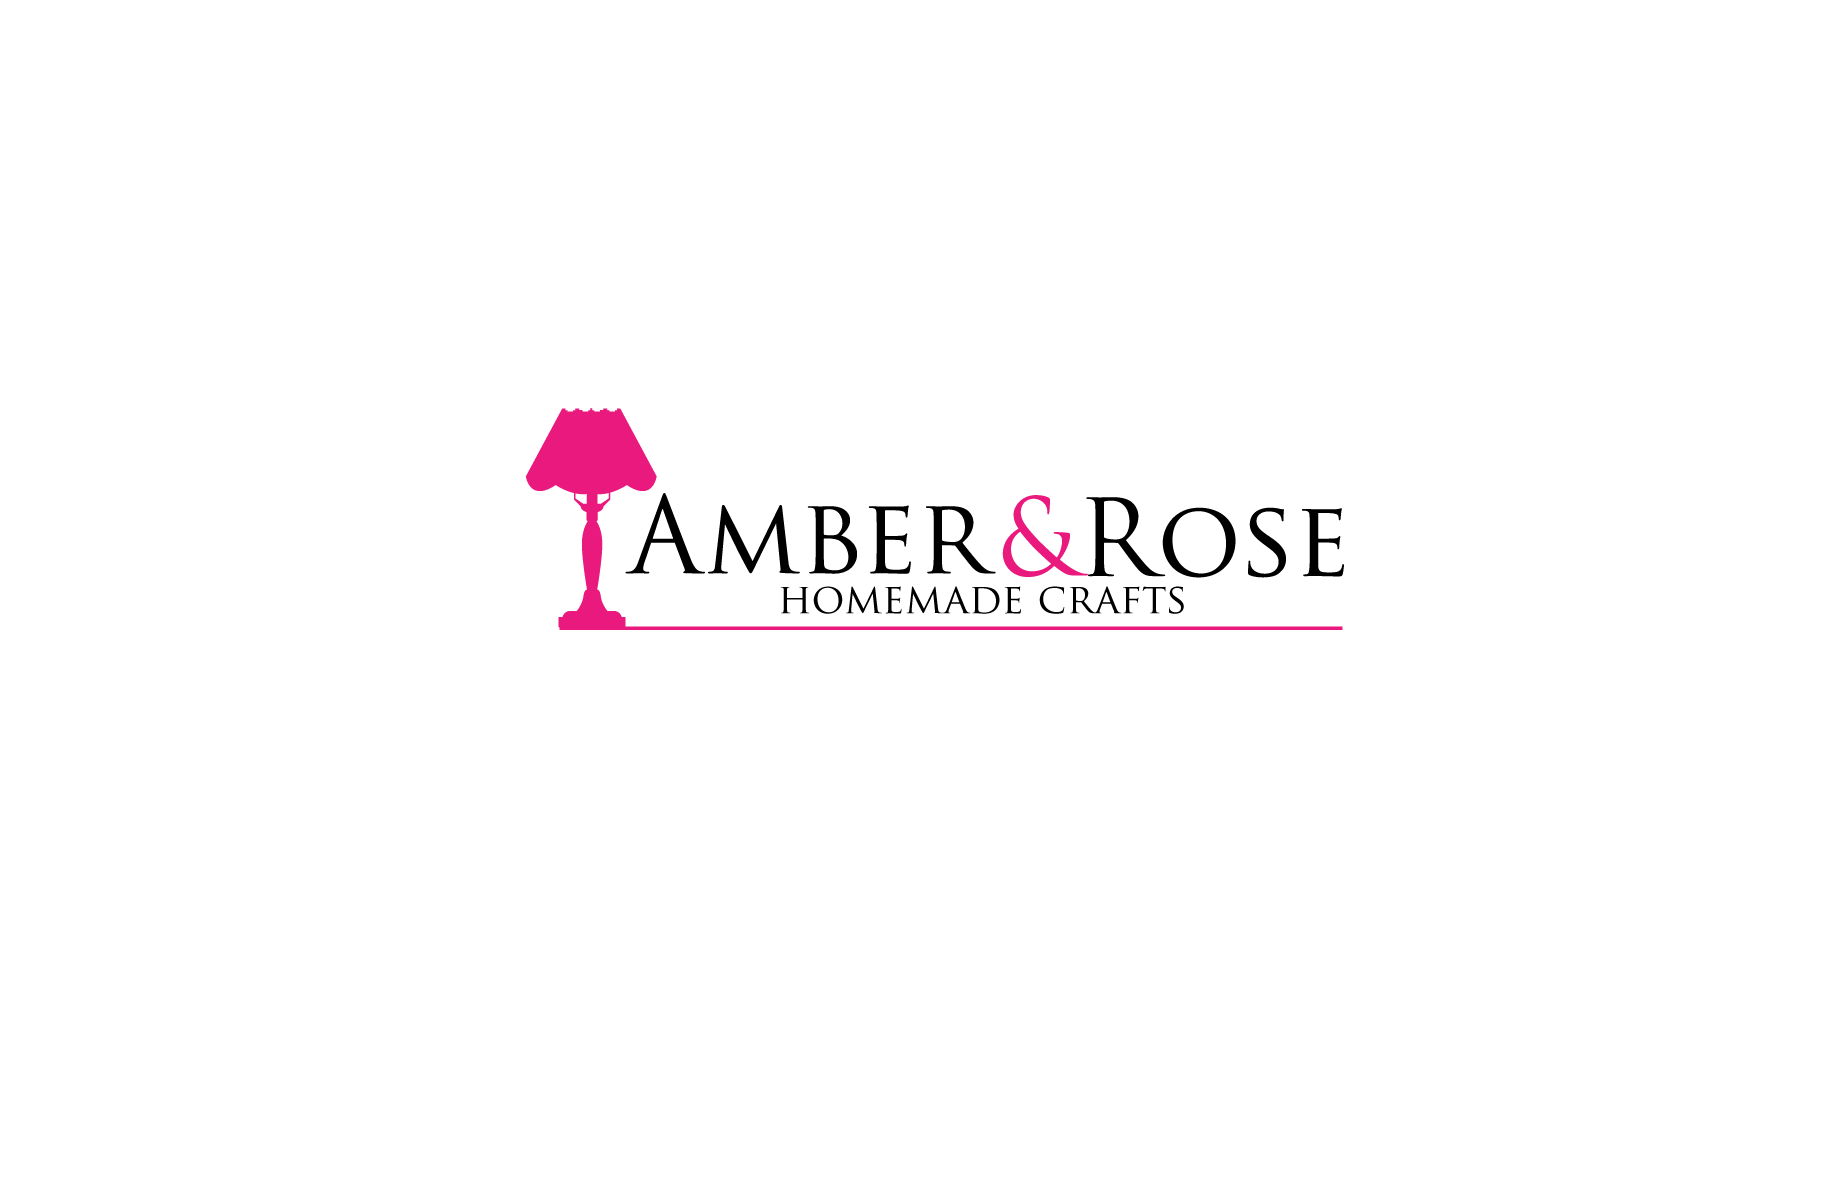 Logo Design by Jan Chua - Entry No. 18 in the Logo Design Contest Creative Logo Design for Amber & Rose.